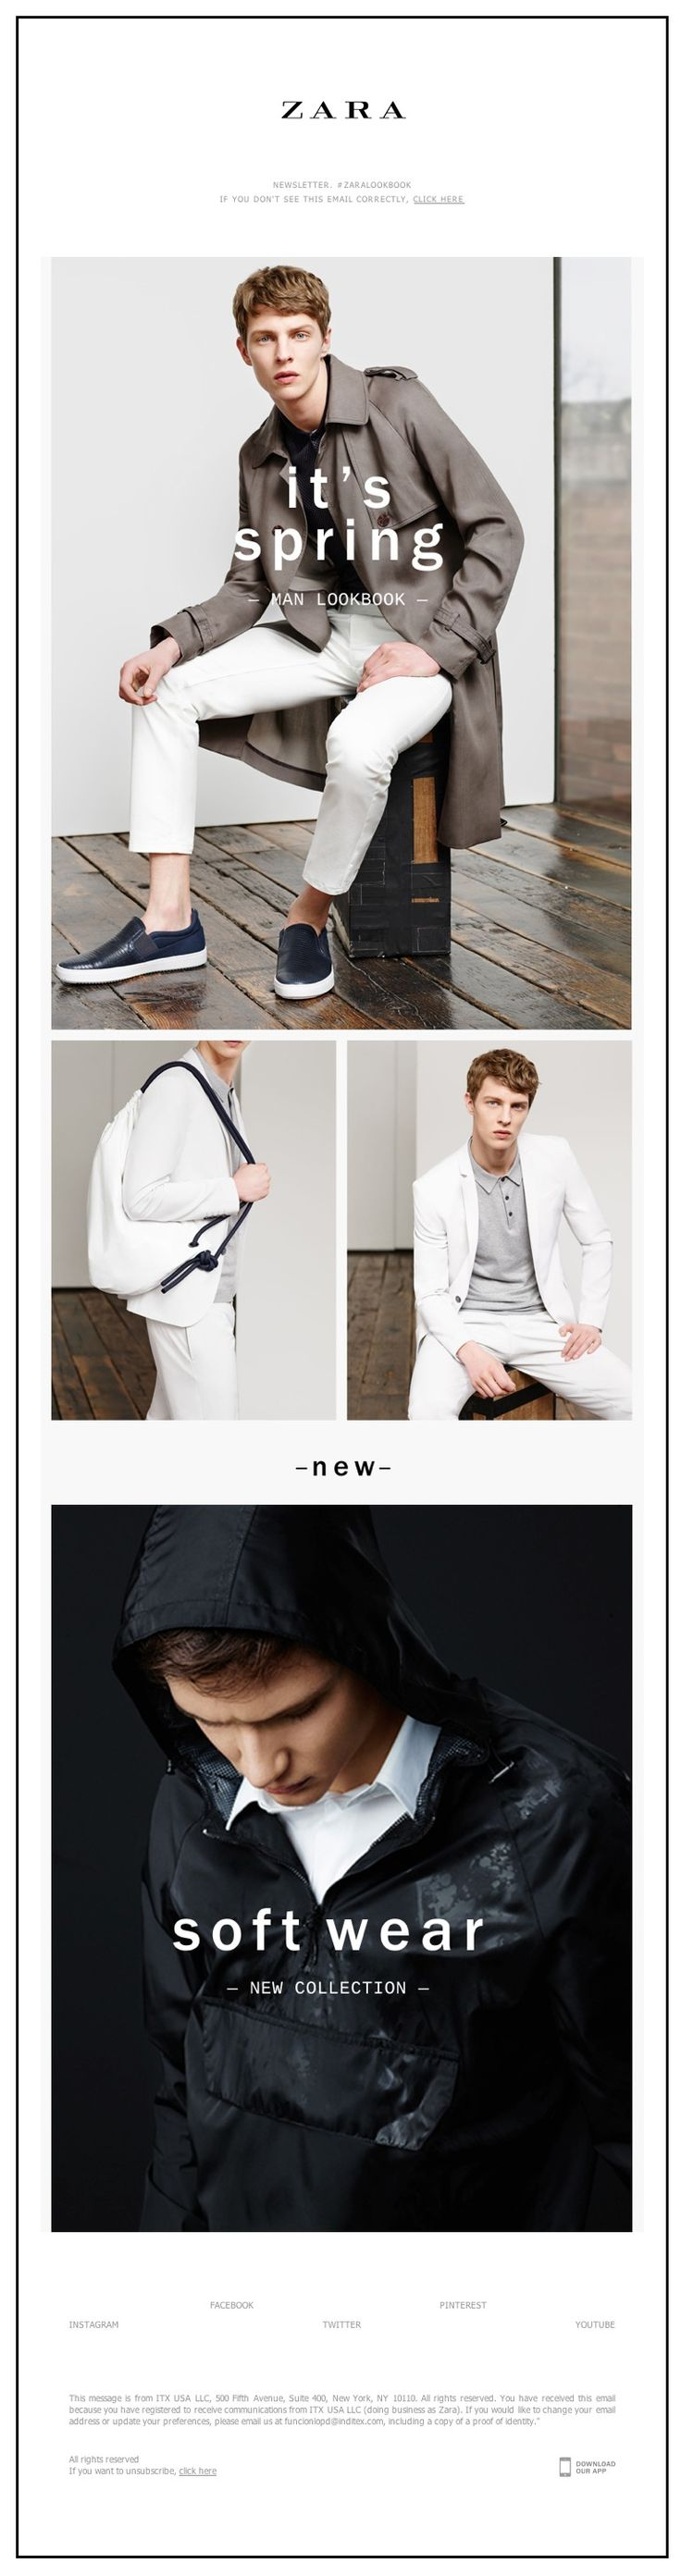 ZARA - Man: New Spring Lookbook. Now online and in stores